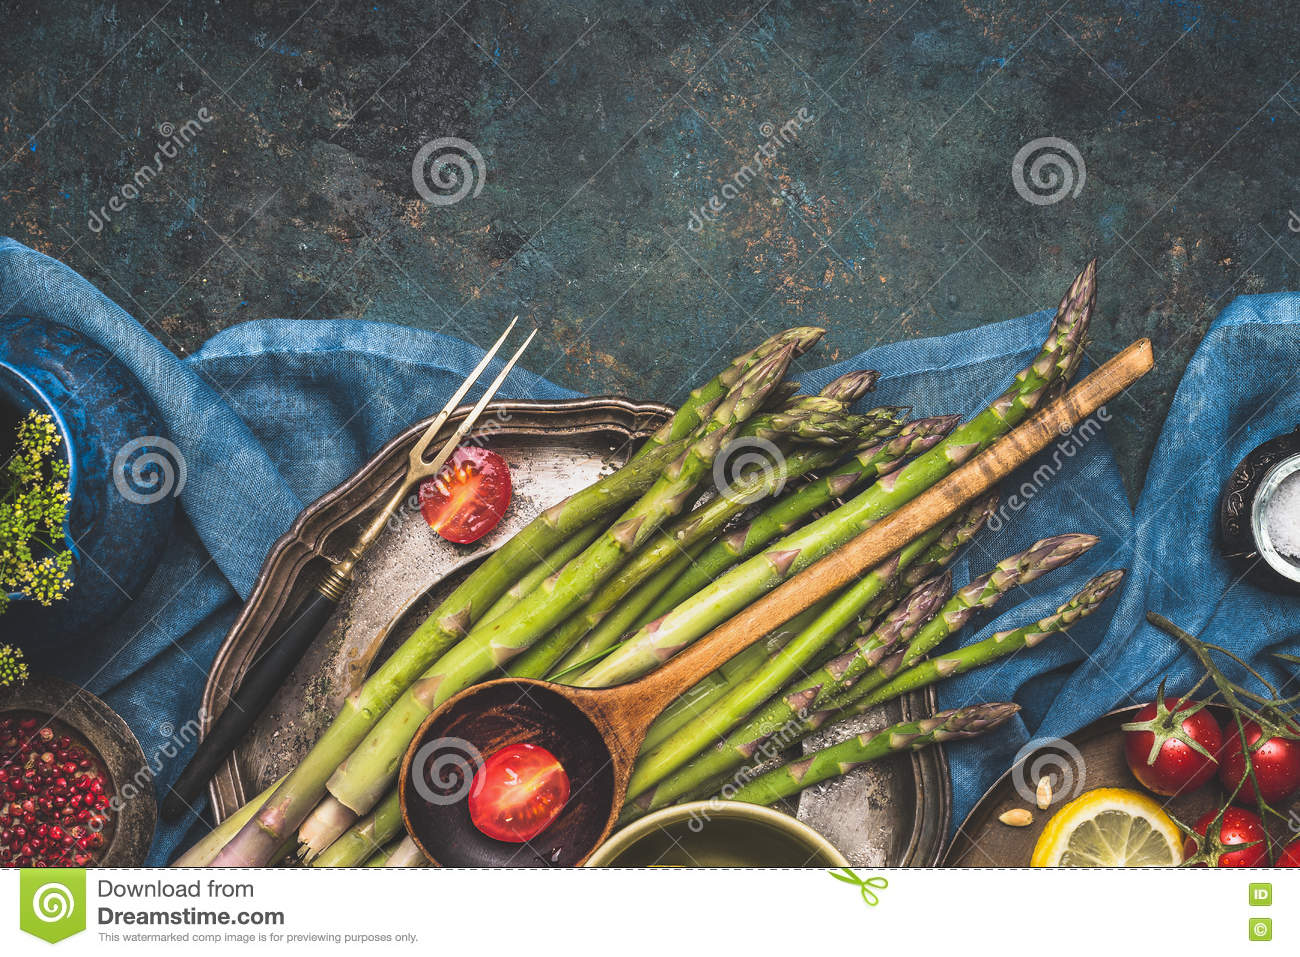 Food border with green asparagus, tomatoes,lemon and other ingredients for tasty asparagus cooking. Green asparagus preparation on